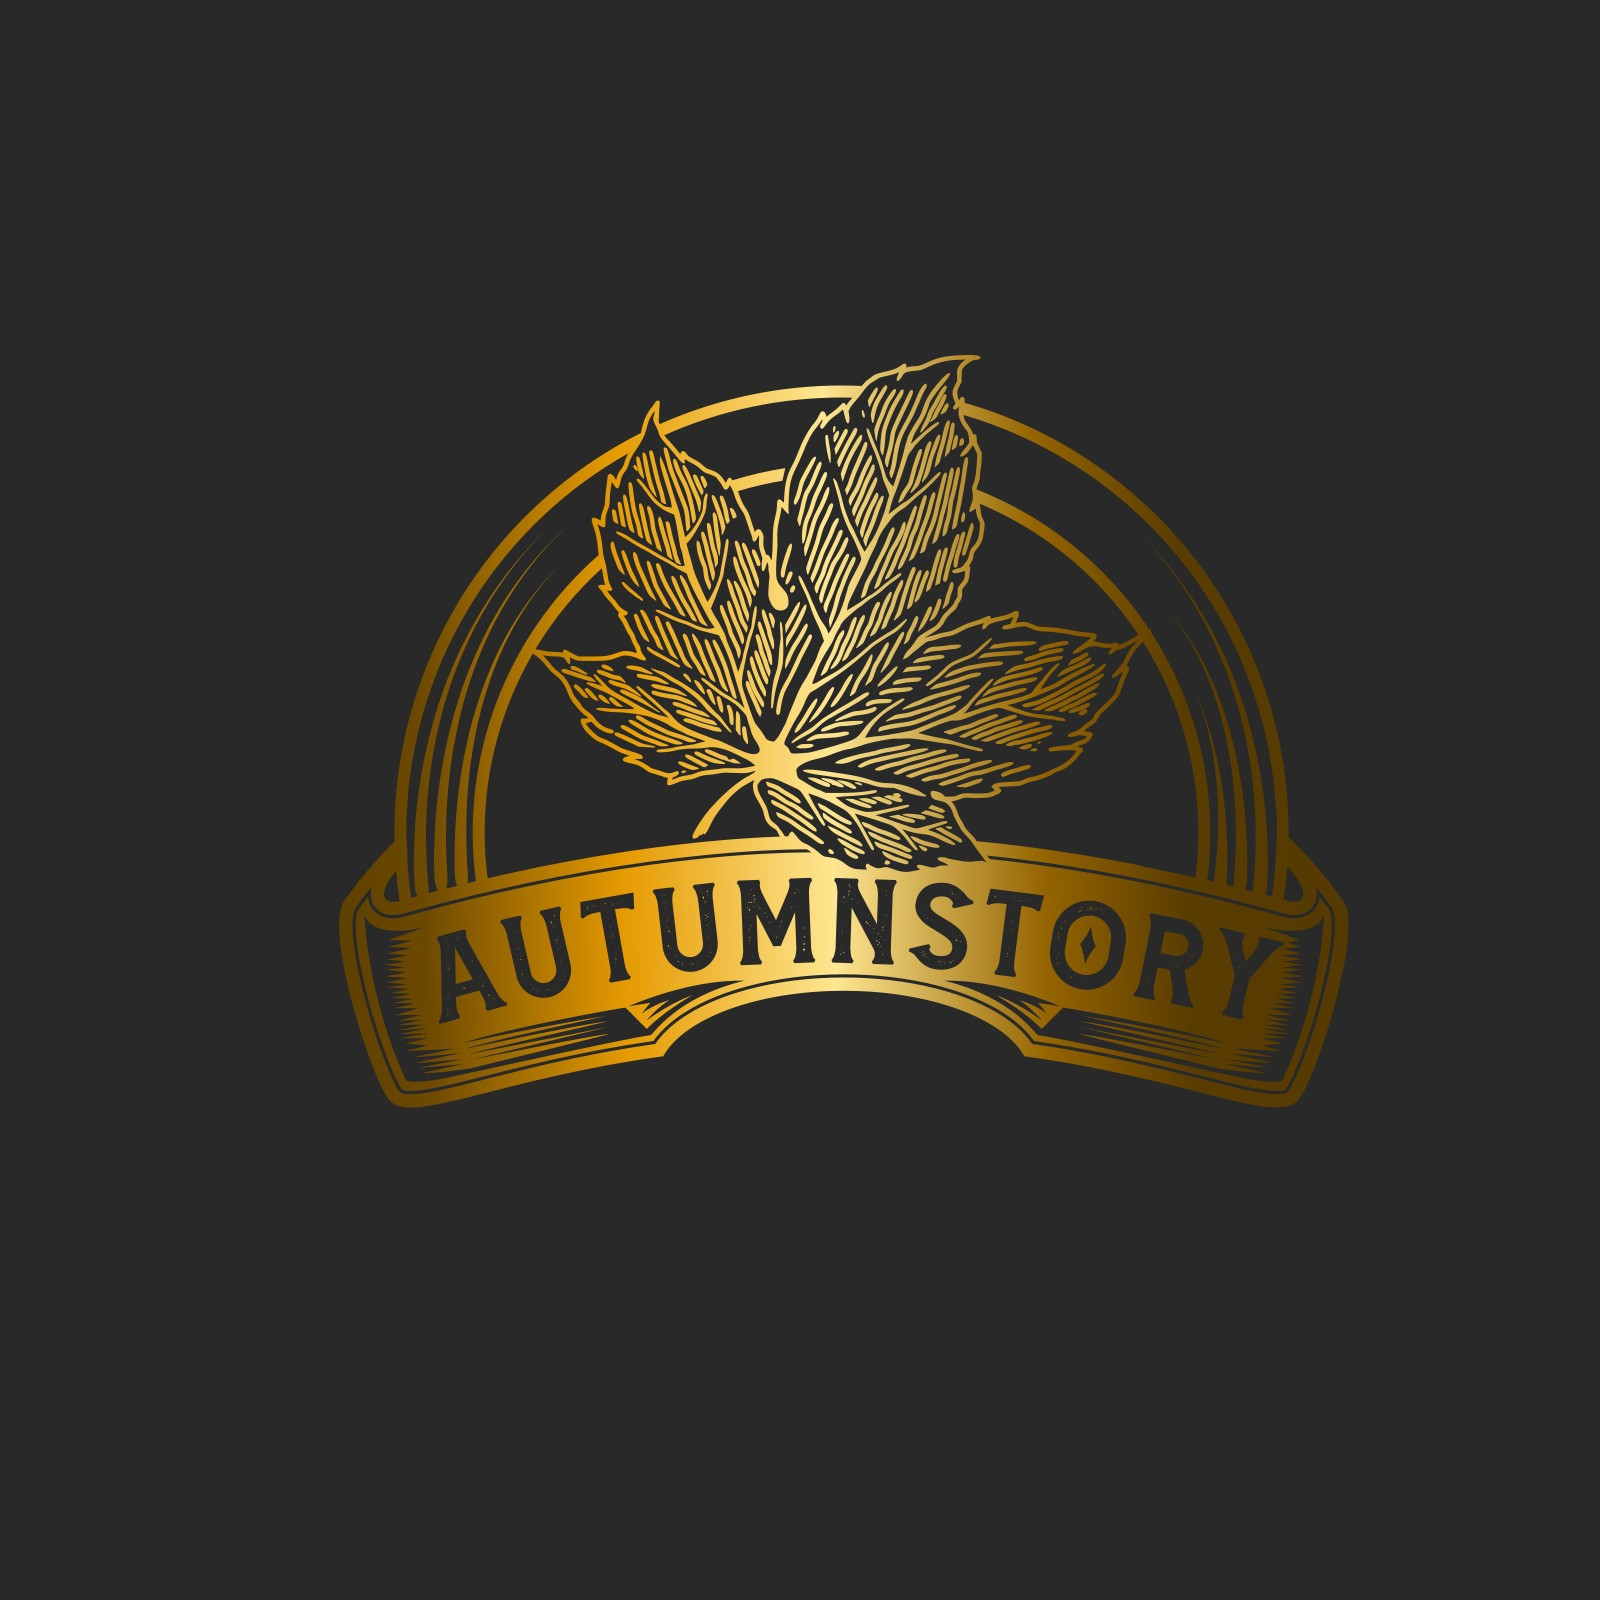 A high-end classic logo about AutumnStory